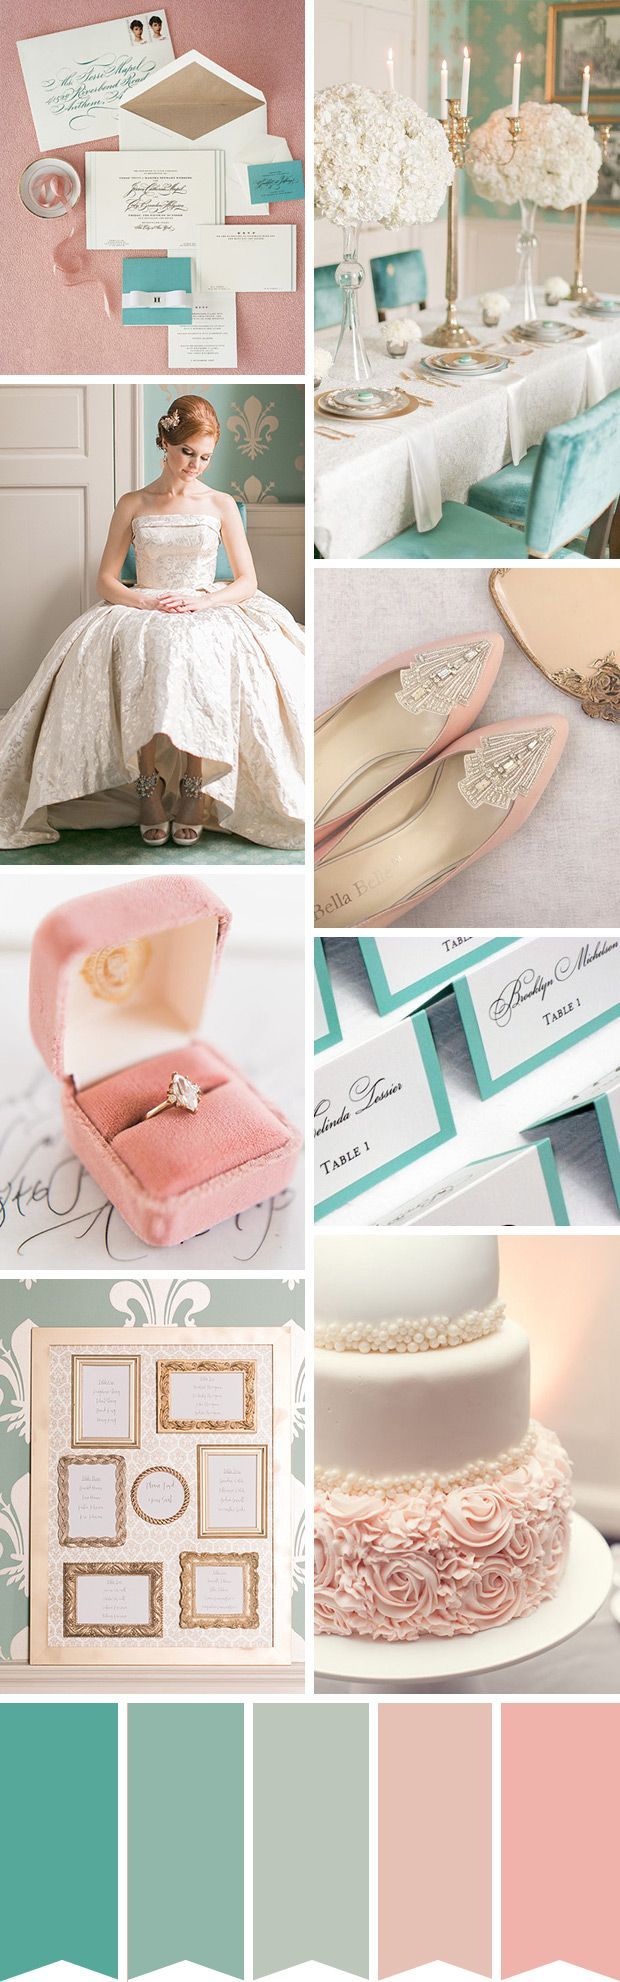 Feminine And Elegant Tiffany Blue And Blush Wedding Inspiration Onefabday Com Ireland Blue And Blush Wedding Teal Wedding Colors Blush Wedding Inspiration